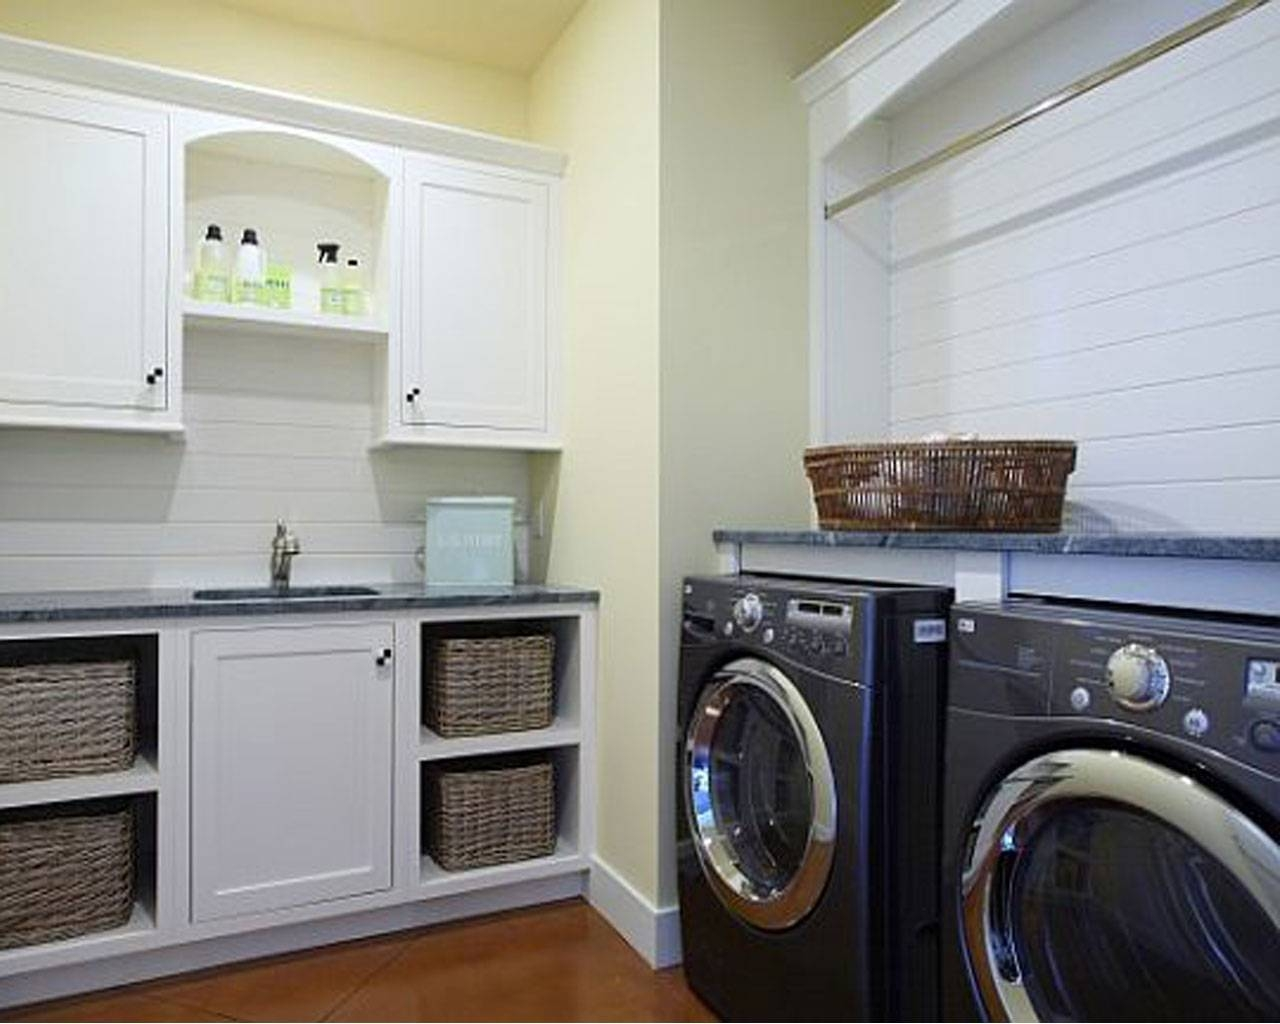 Decorating Laundry Room : The Ideas Of Sleek Laundry Room Decor Within Most Current Laundry Room Wall Art Decors (View 10 of 25)